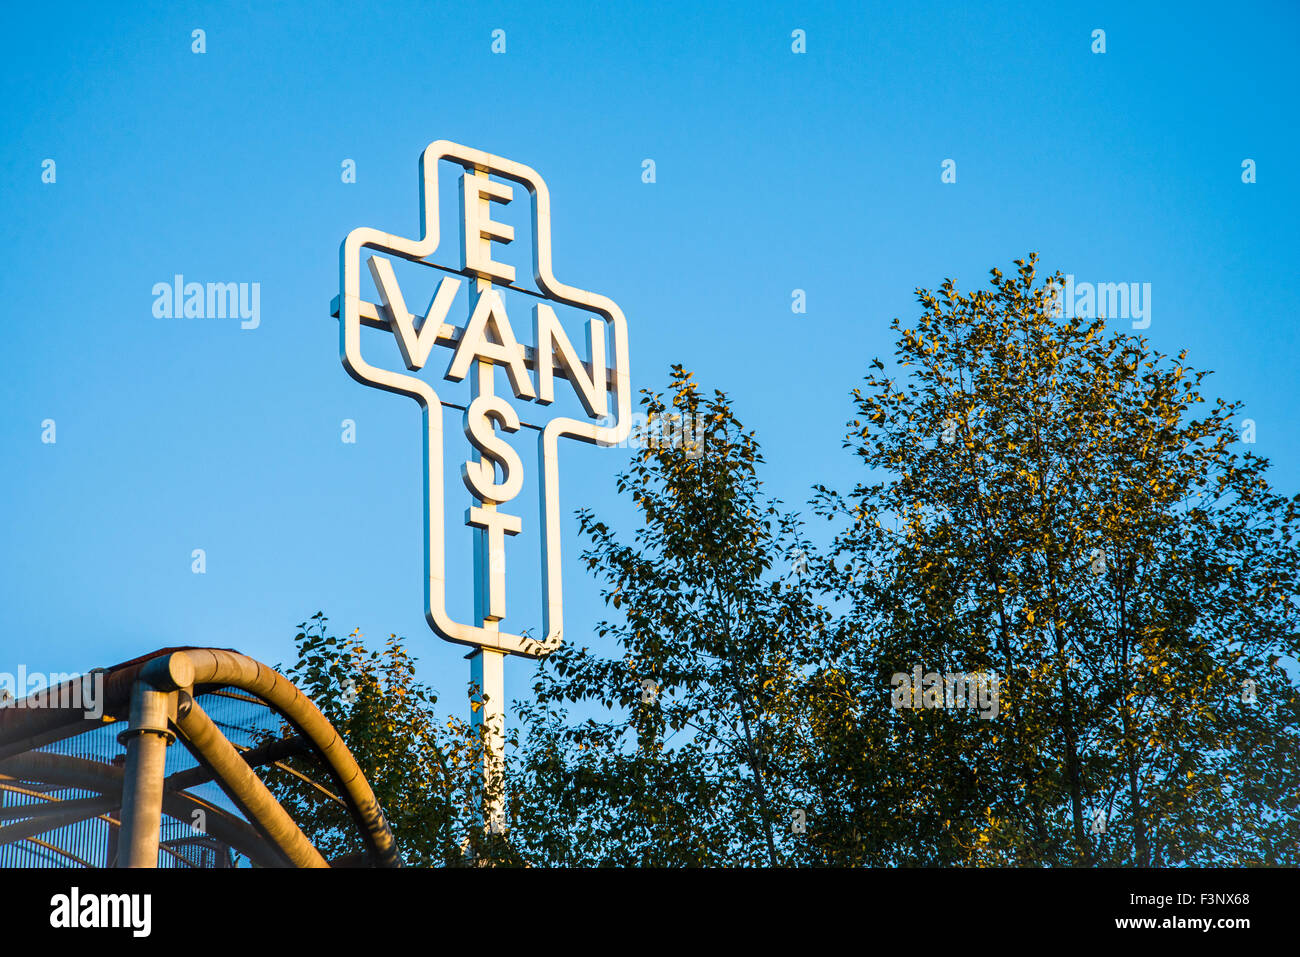 Monument for East Vancouver by artist Ken Lum, Vancouver, British Columbia, Canada - Stock Image